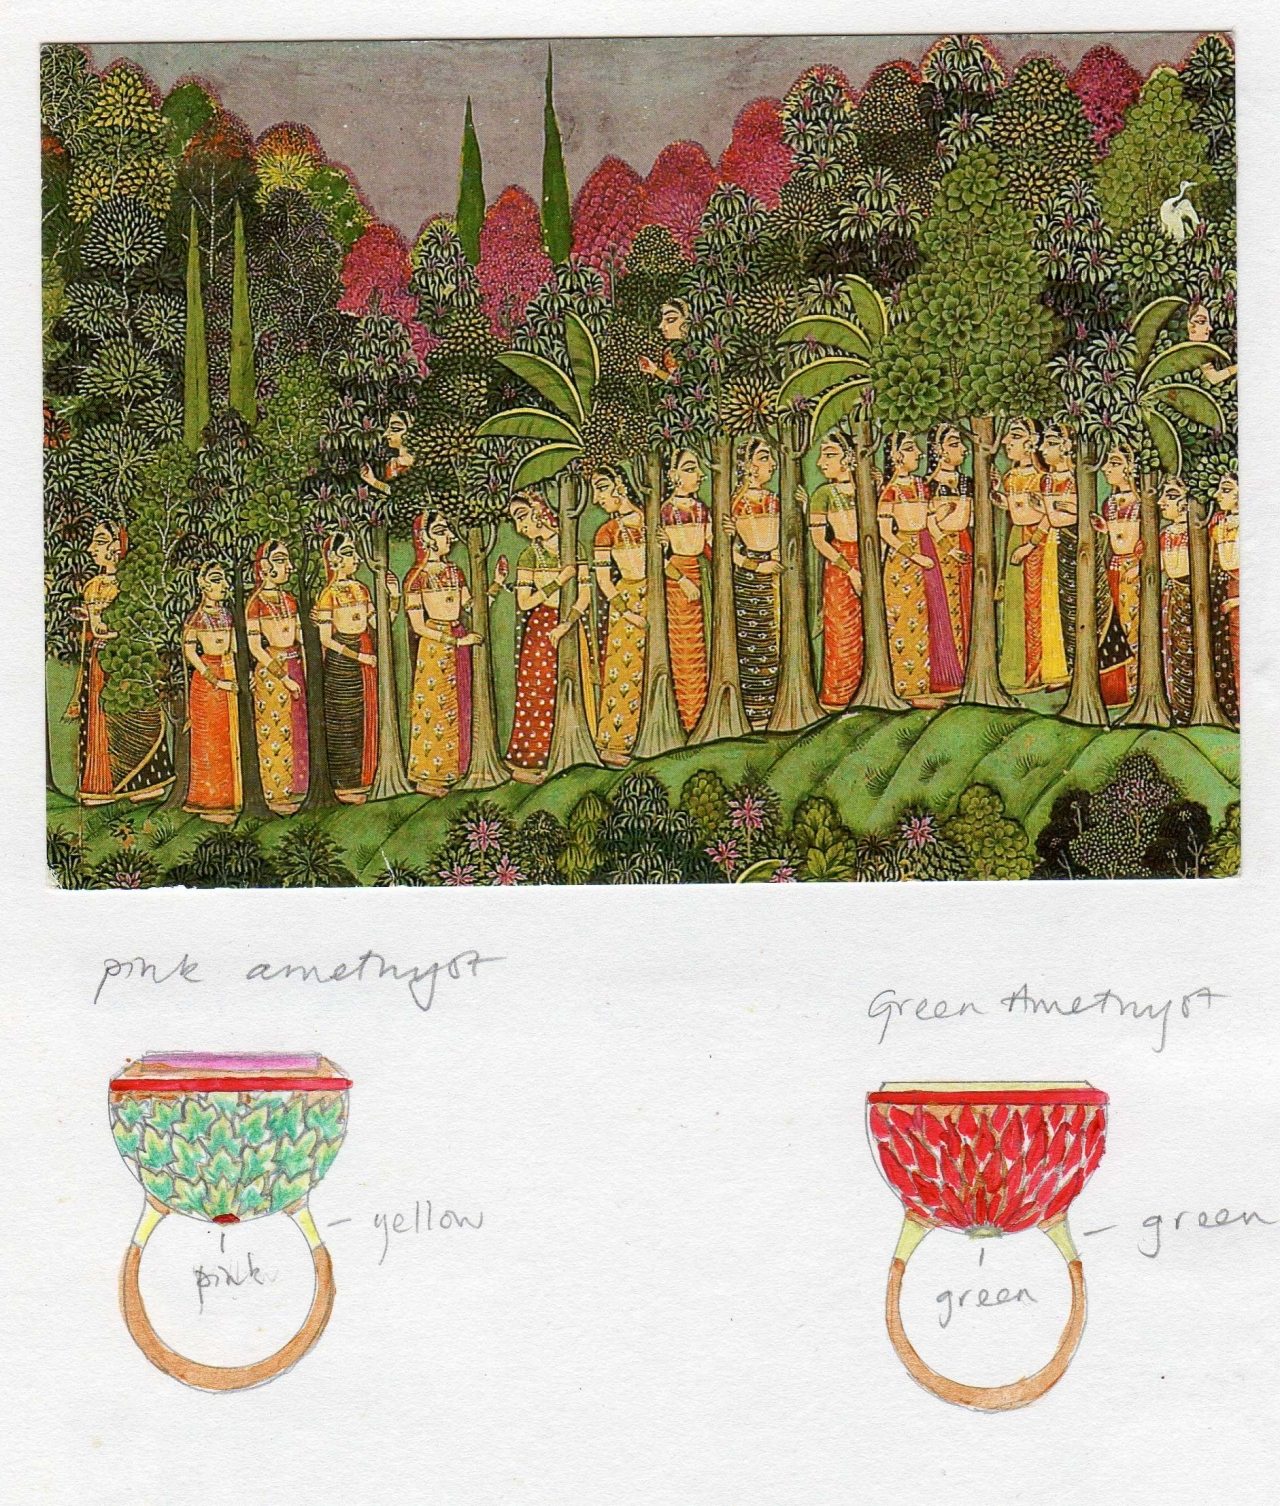 Ancient Indian Art which that has served as inspiration for Alice Cicolini's work coupled with her drawings for 22-kt gold meenakari enameled rings to be made in Jaipur. Reproduced in Bejeweled: The World of Ethical Jewelry (K Roderick, Rizzoli 2019, p. 17.